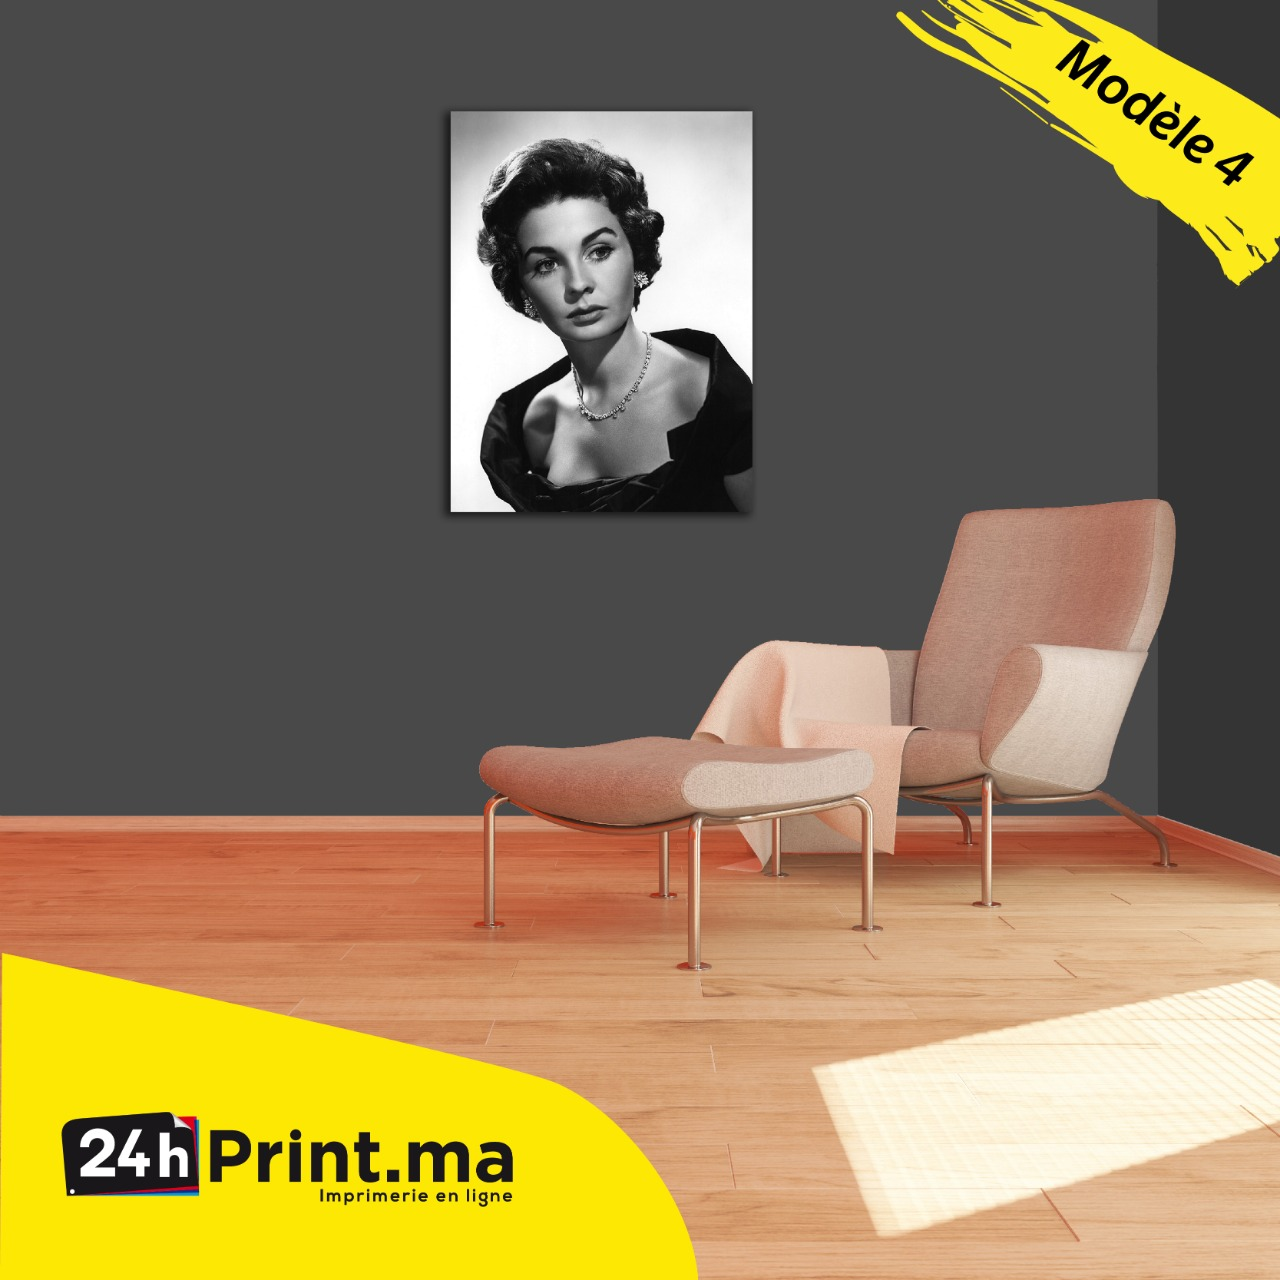 https://www.24hprint.ma/images/products_gallery_images/476.jpeg